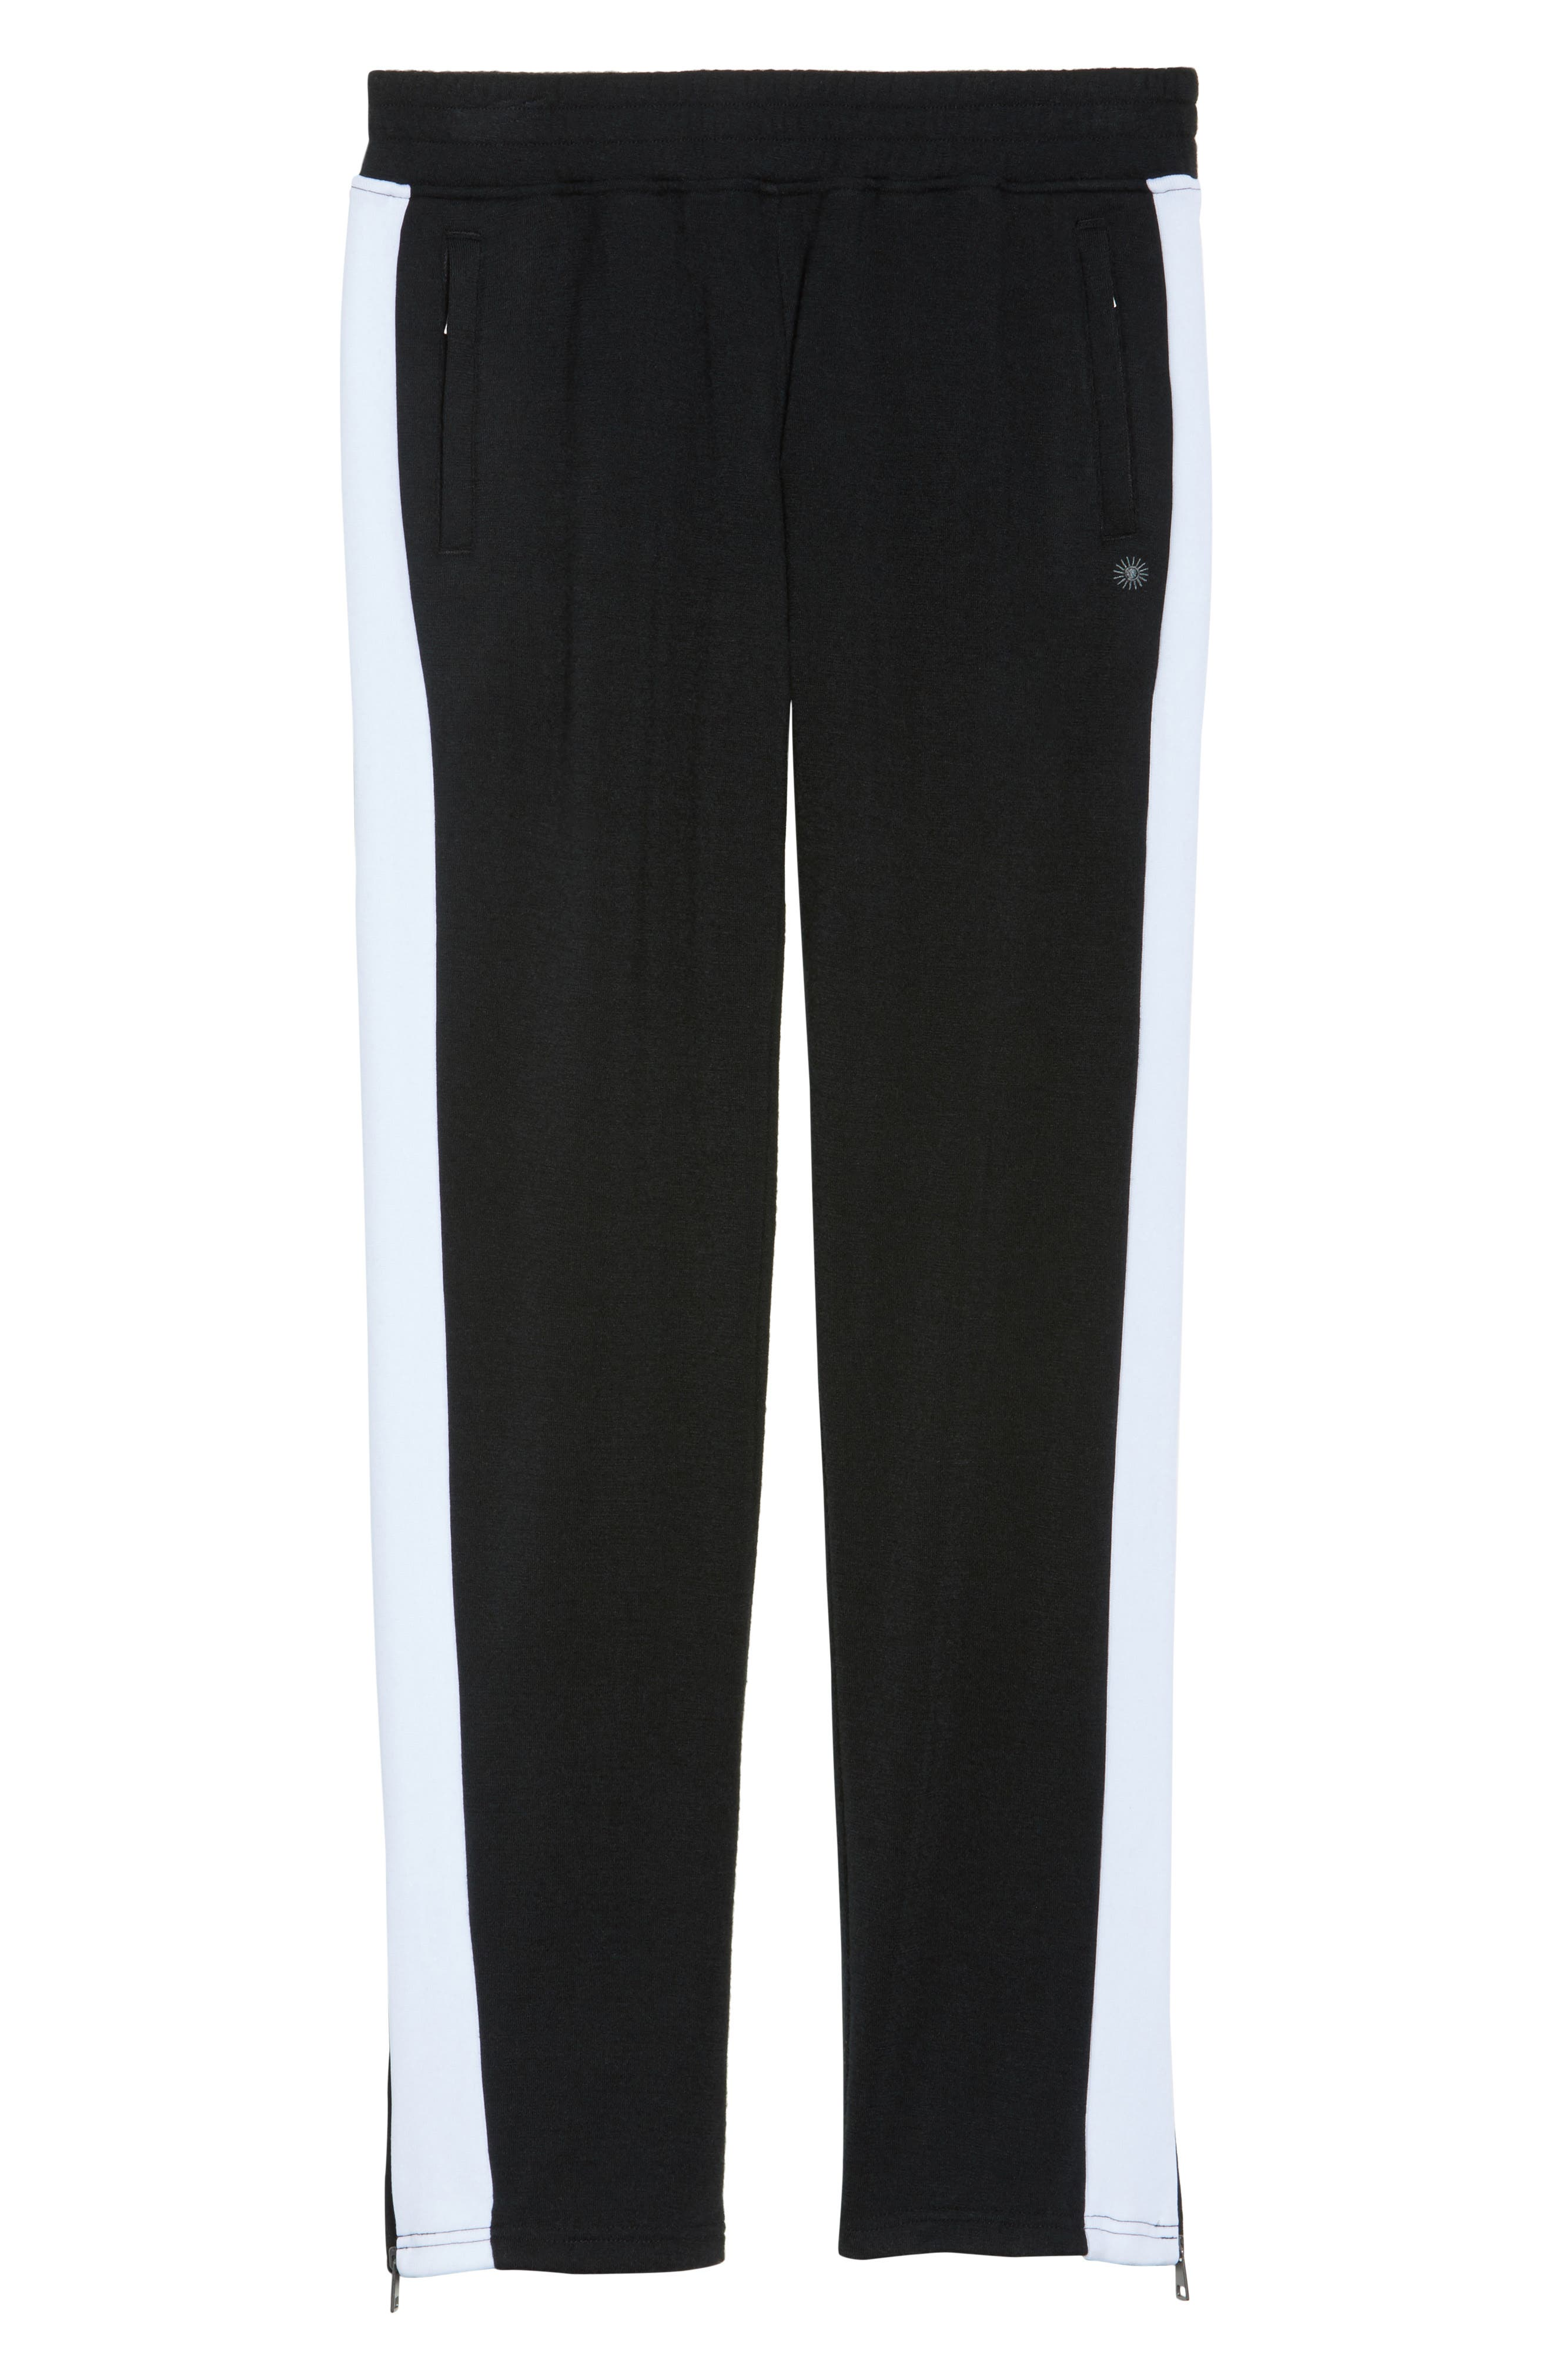 Lizy Track Pants,                             Alternate thumbnail 6, color,                             BLACK